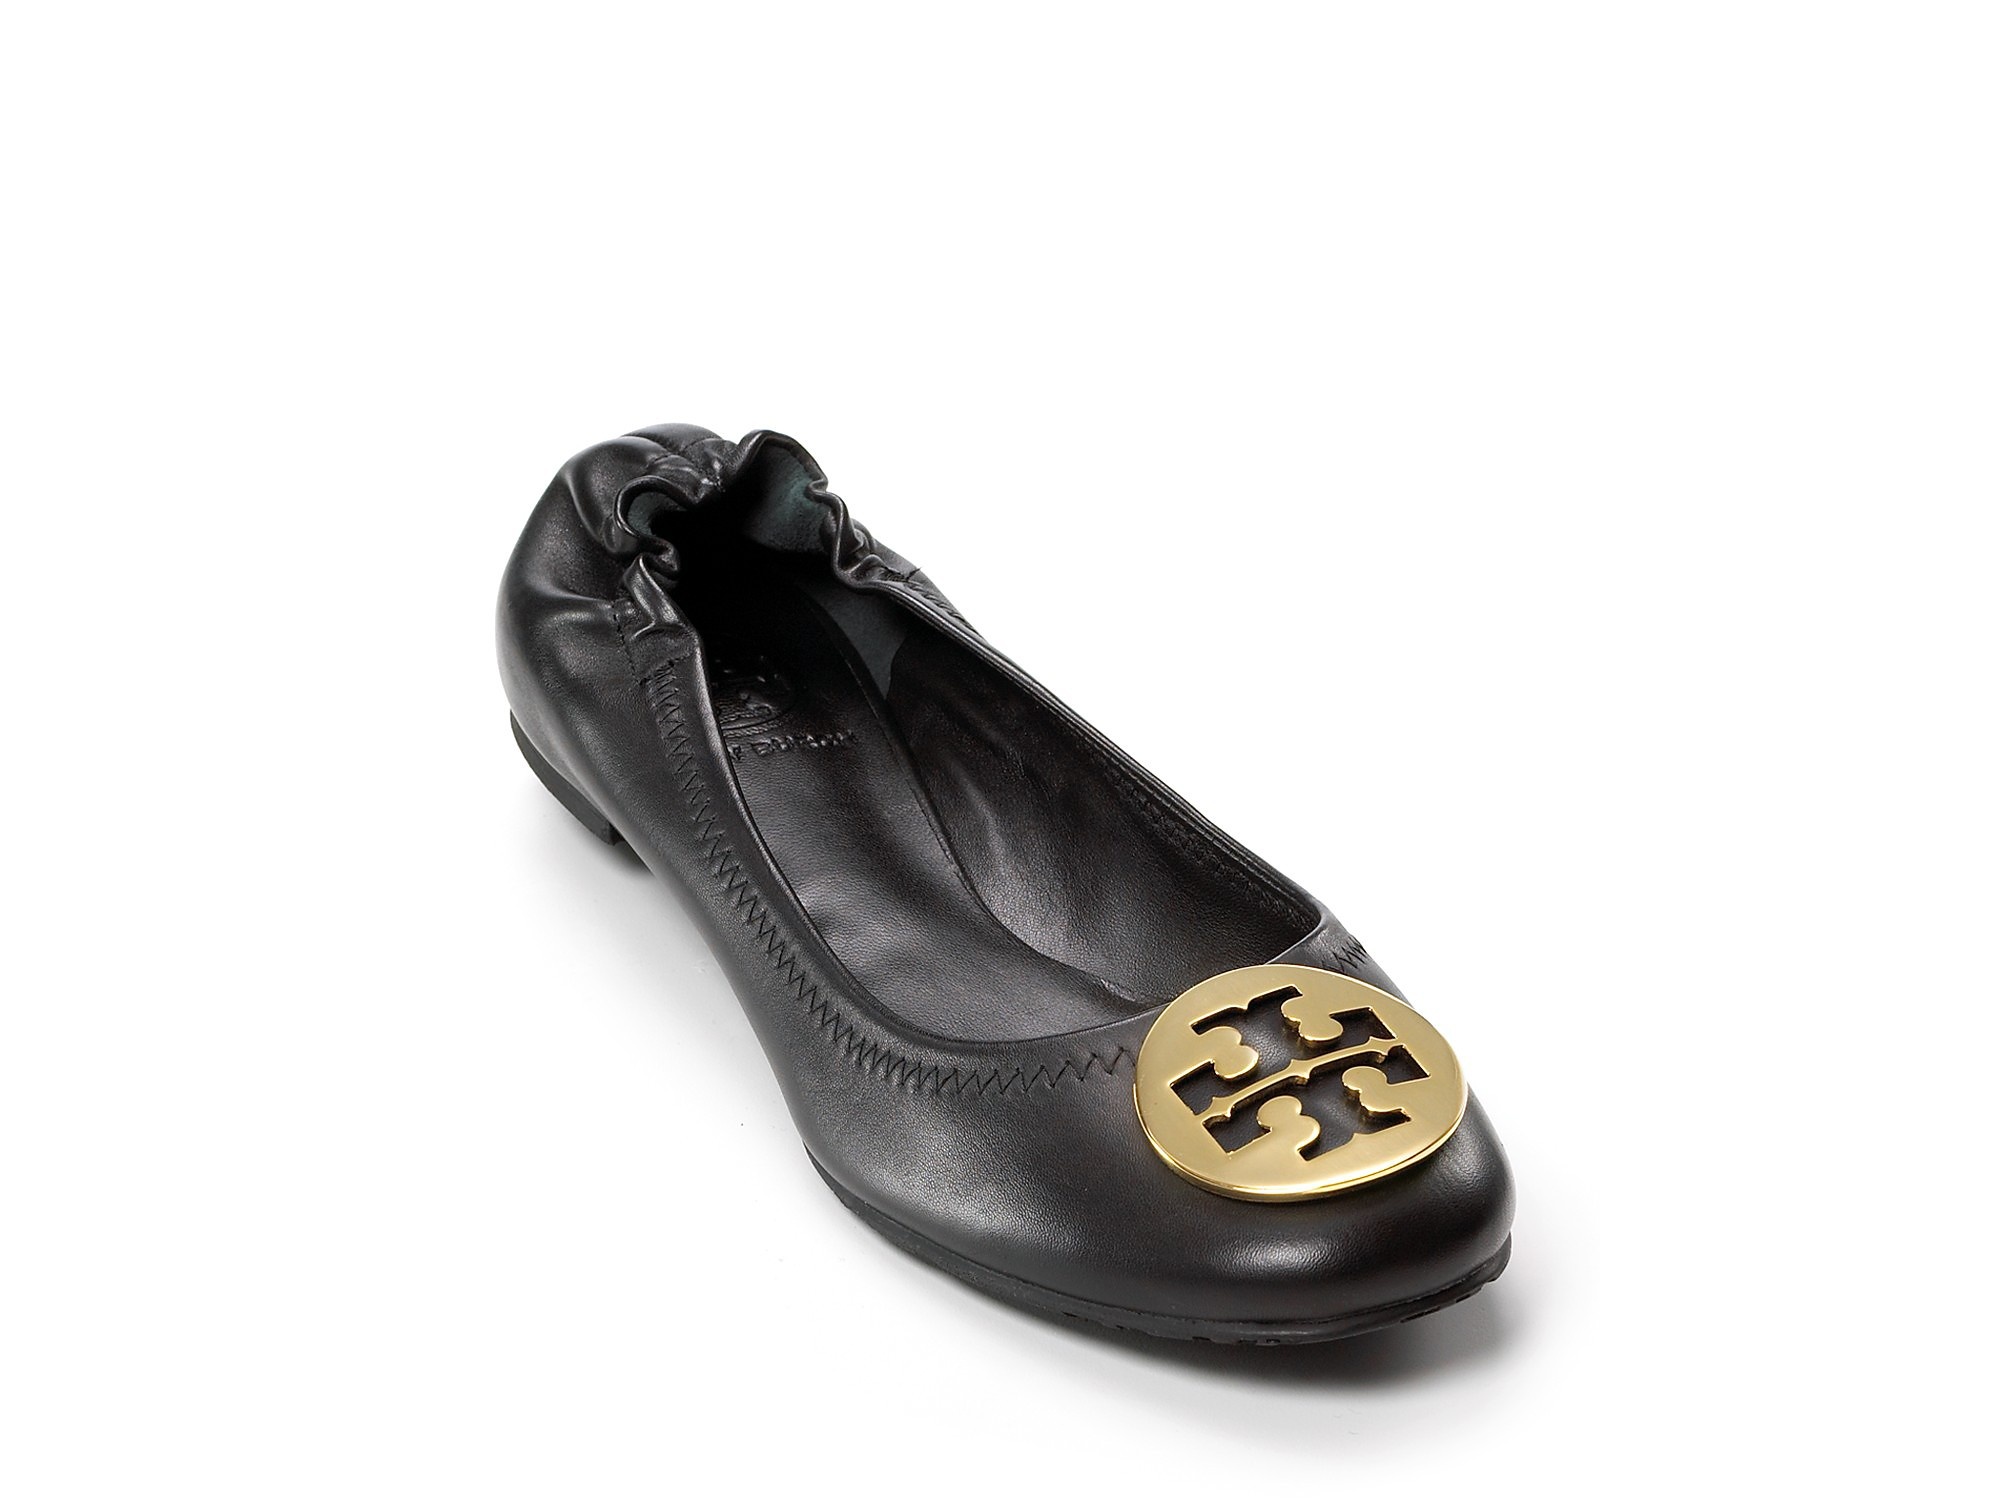 435bf92be Lyst - Tory Burch Flats Reva Ballet in Black